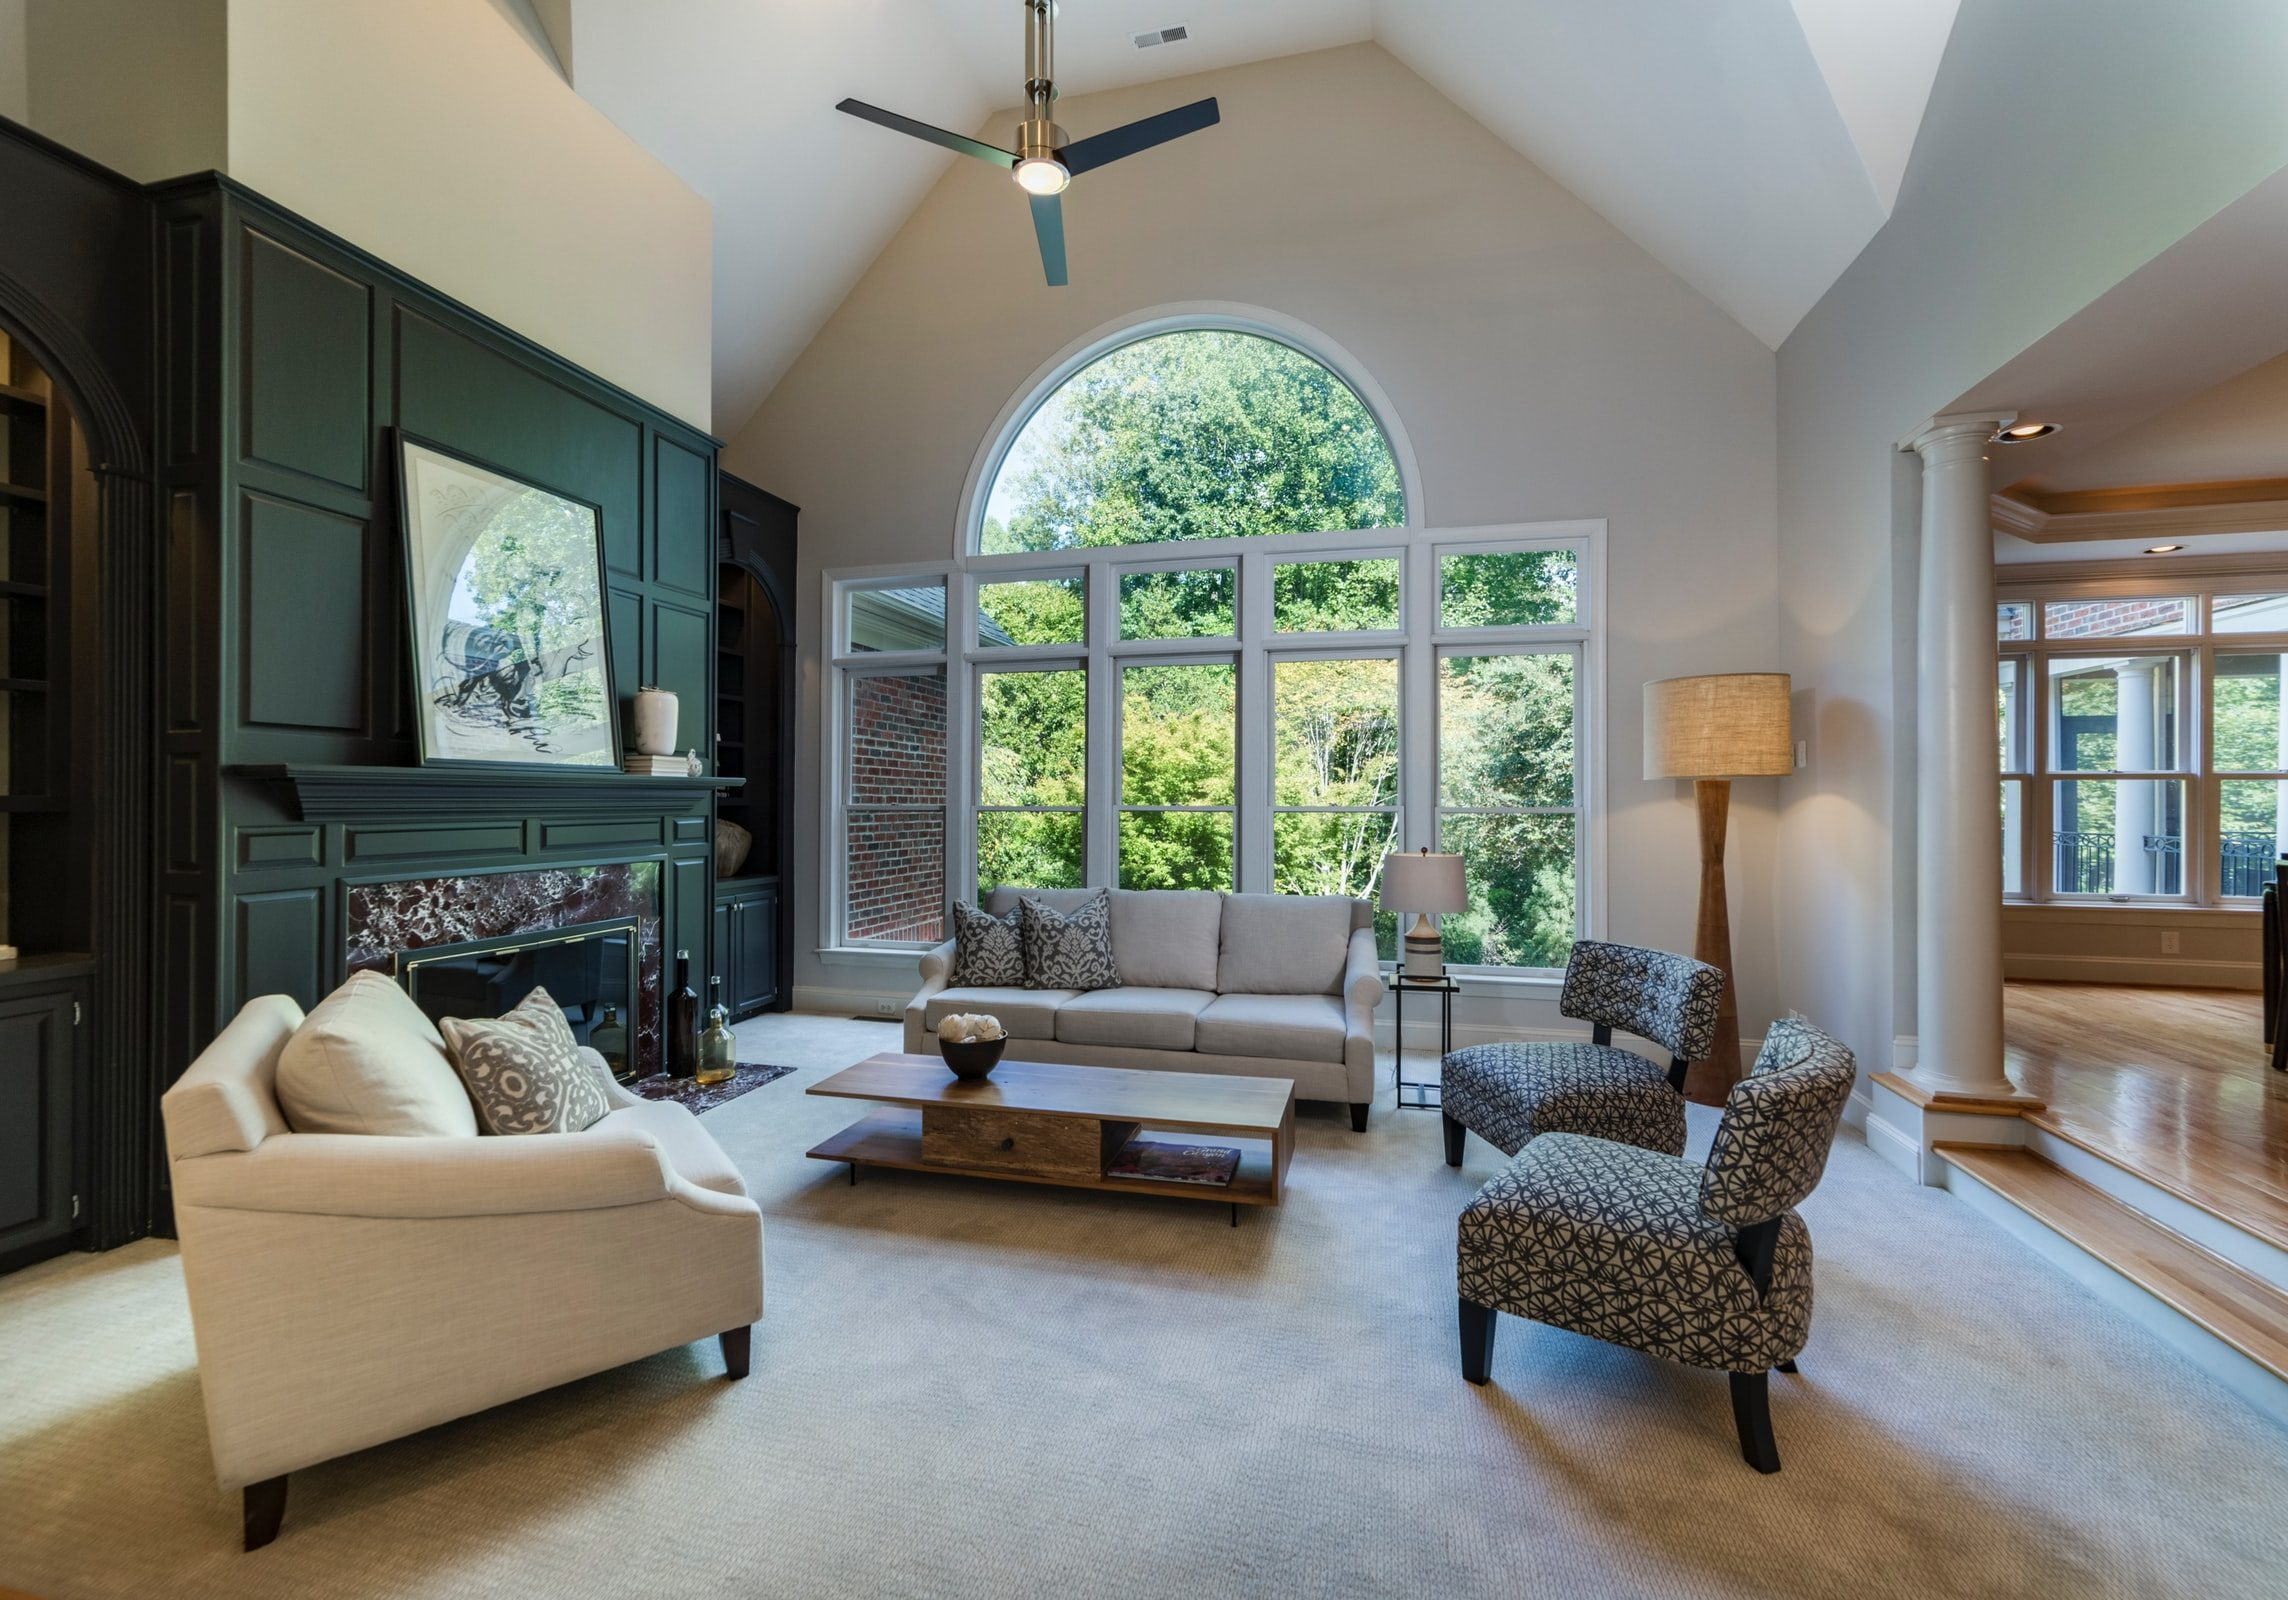 living room with fireplace and big window